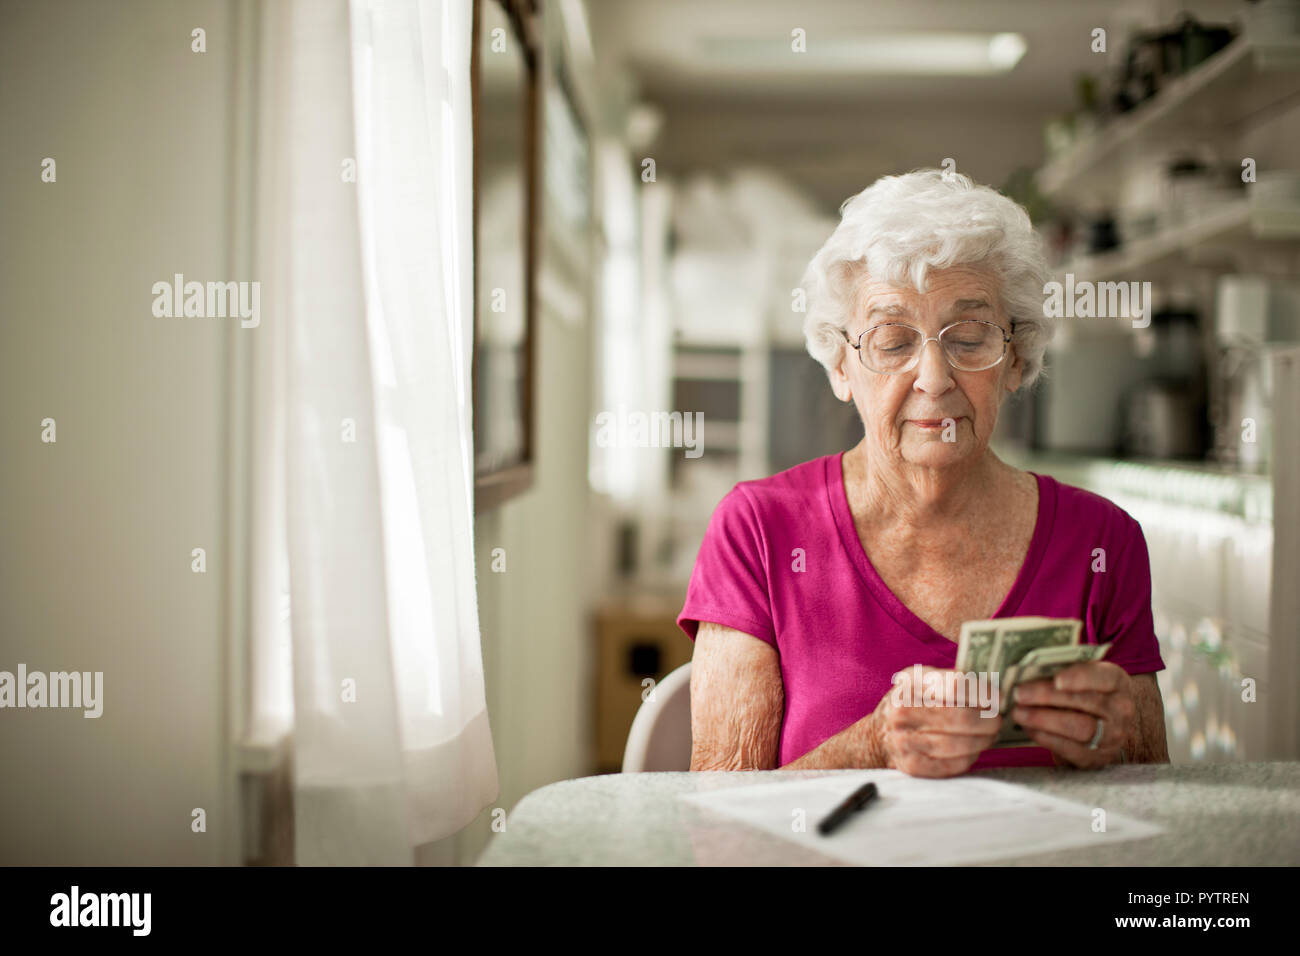 Anxious elderly woman sorts through her money to see if she has enough to pay the bill in front of her. - Stock Image